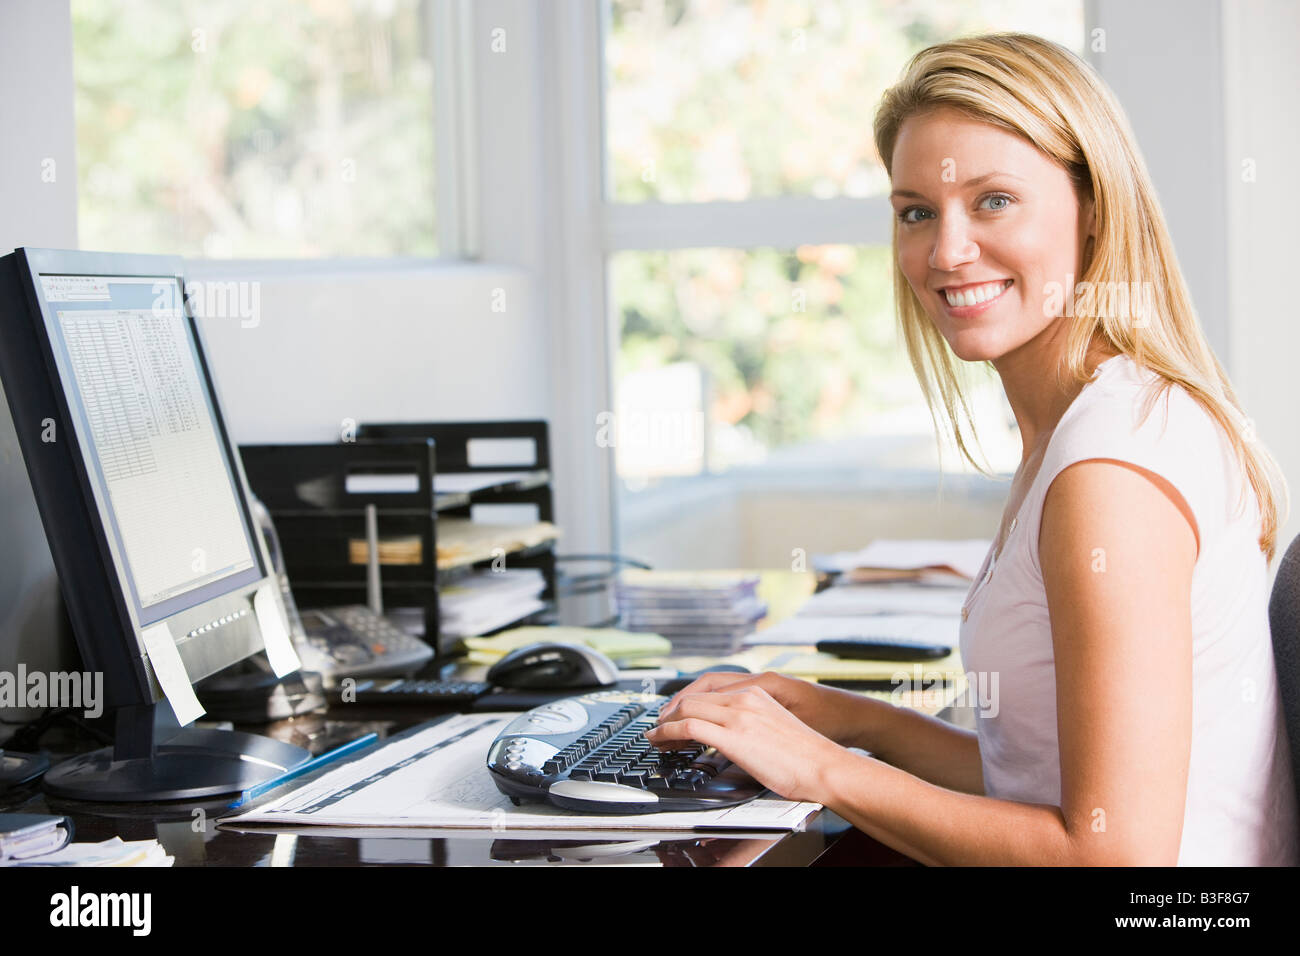 Woman in home office with computer smiling - Stock Image